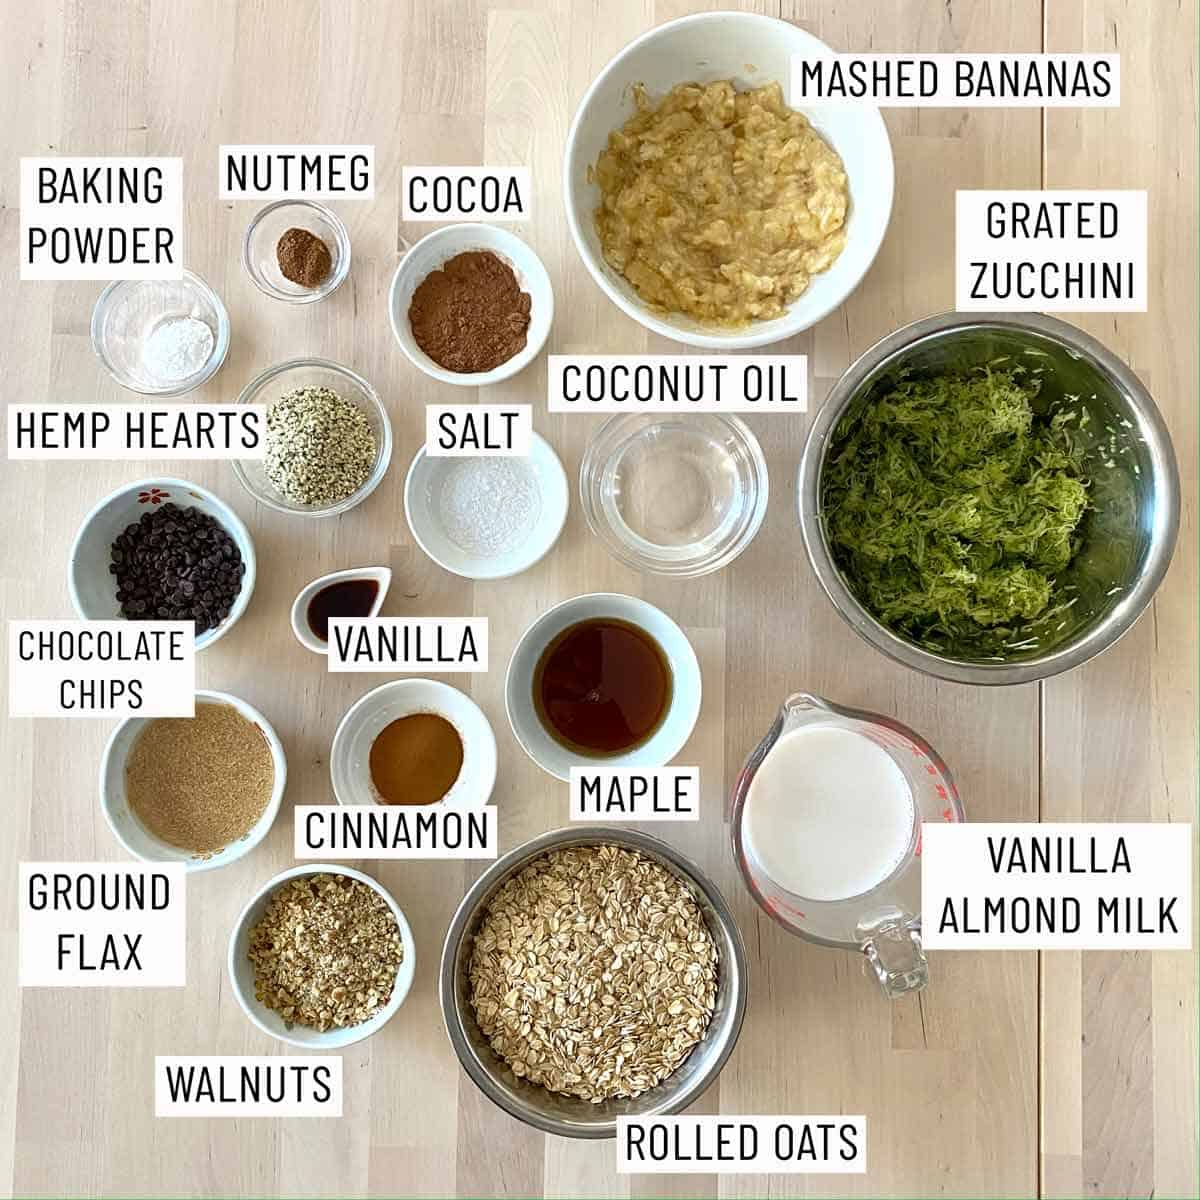 Ingredients needed to make Vegan Baked Oatmeal with Chocolate and Zucchini.